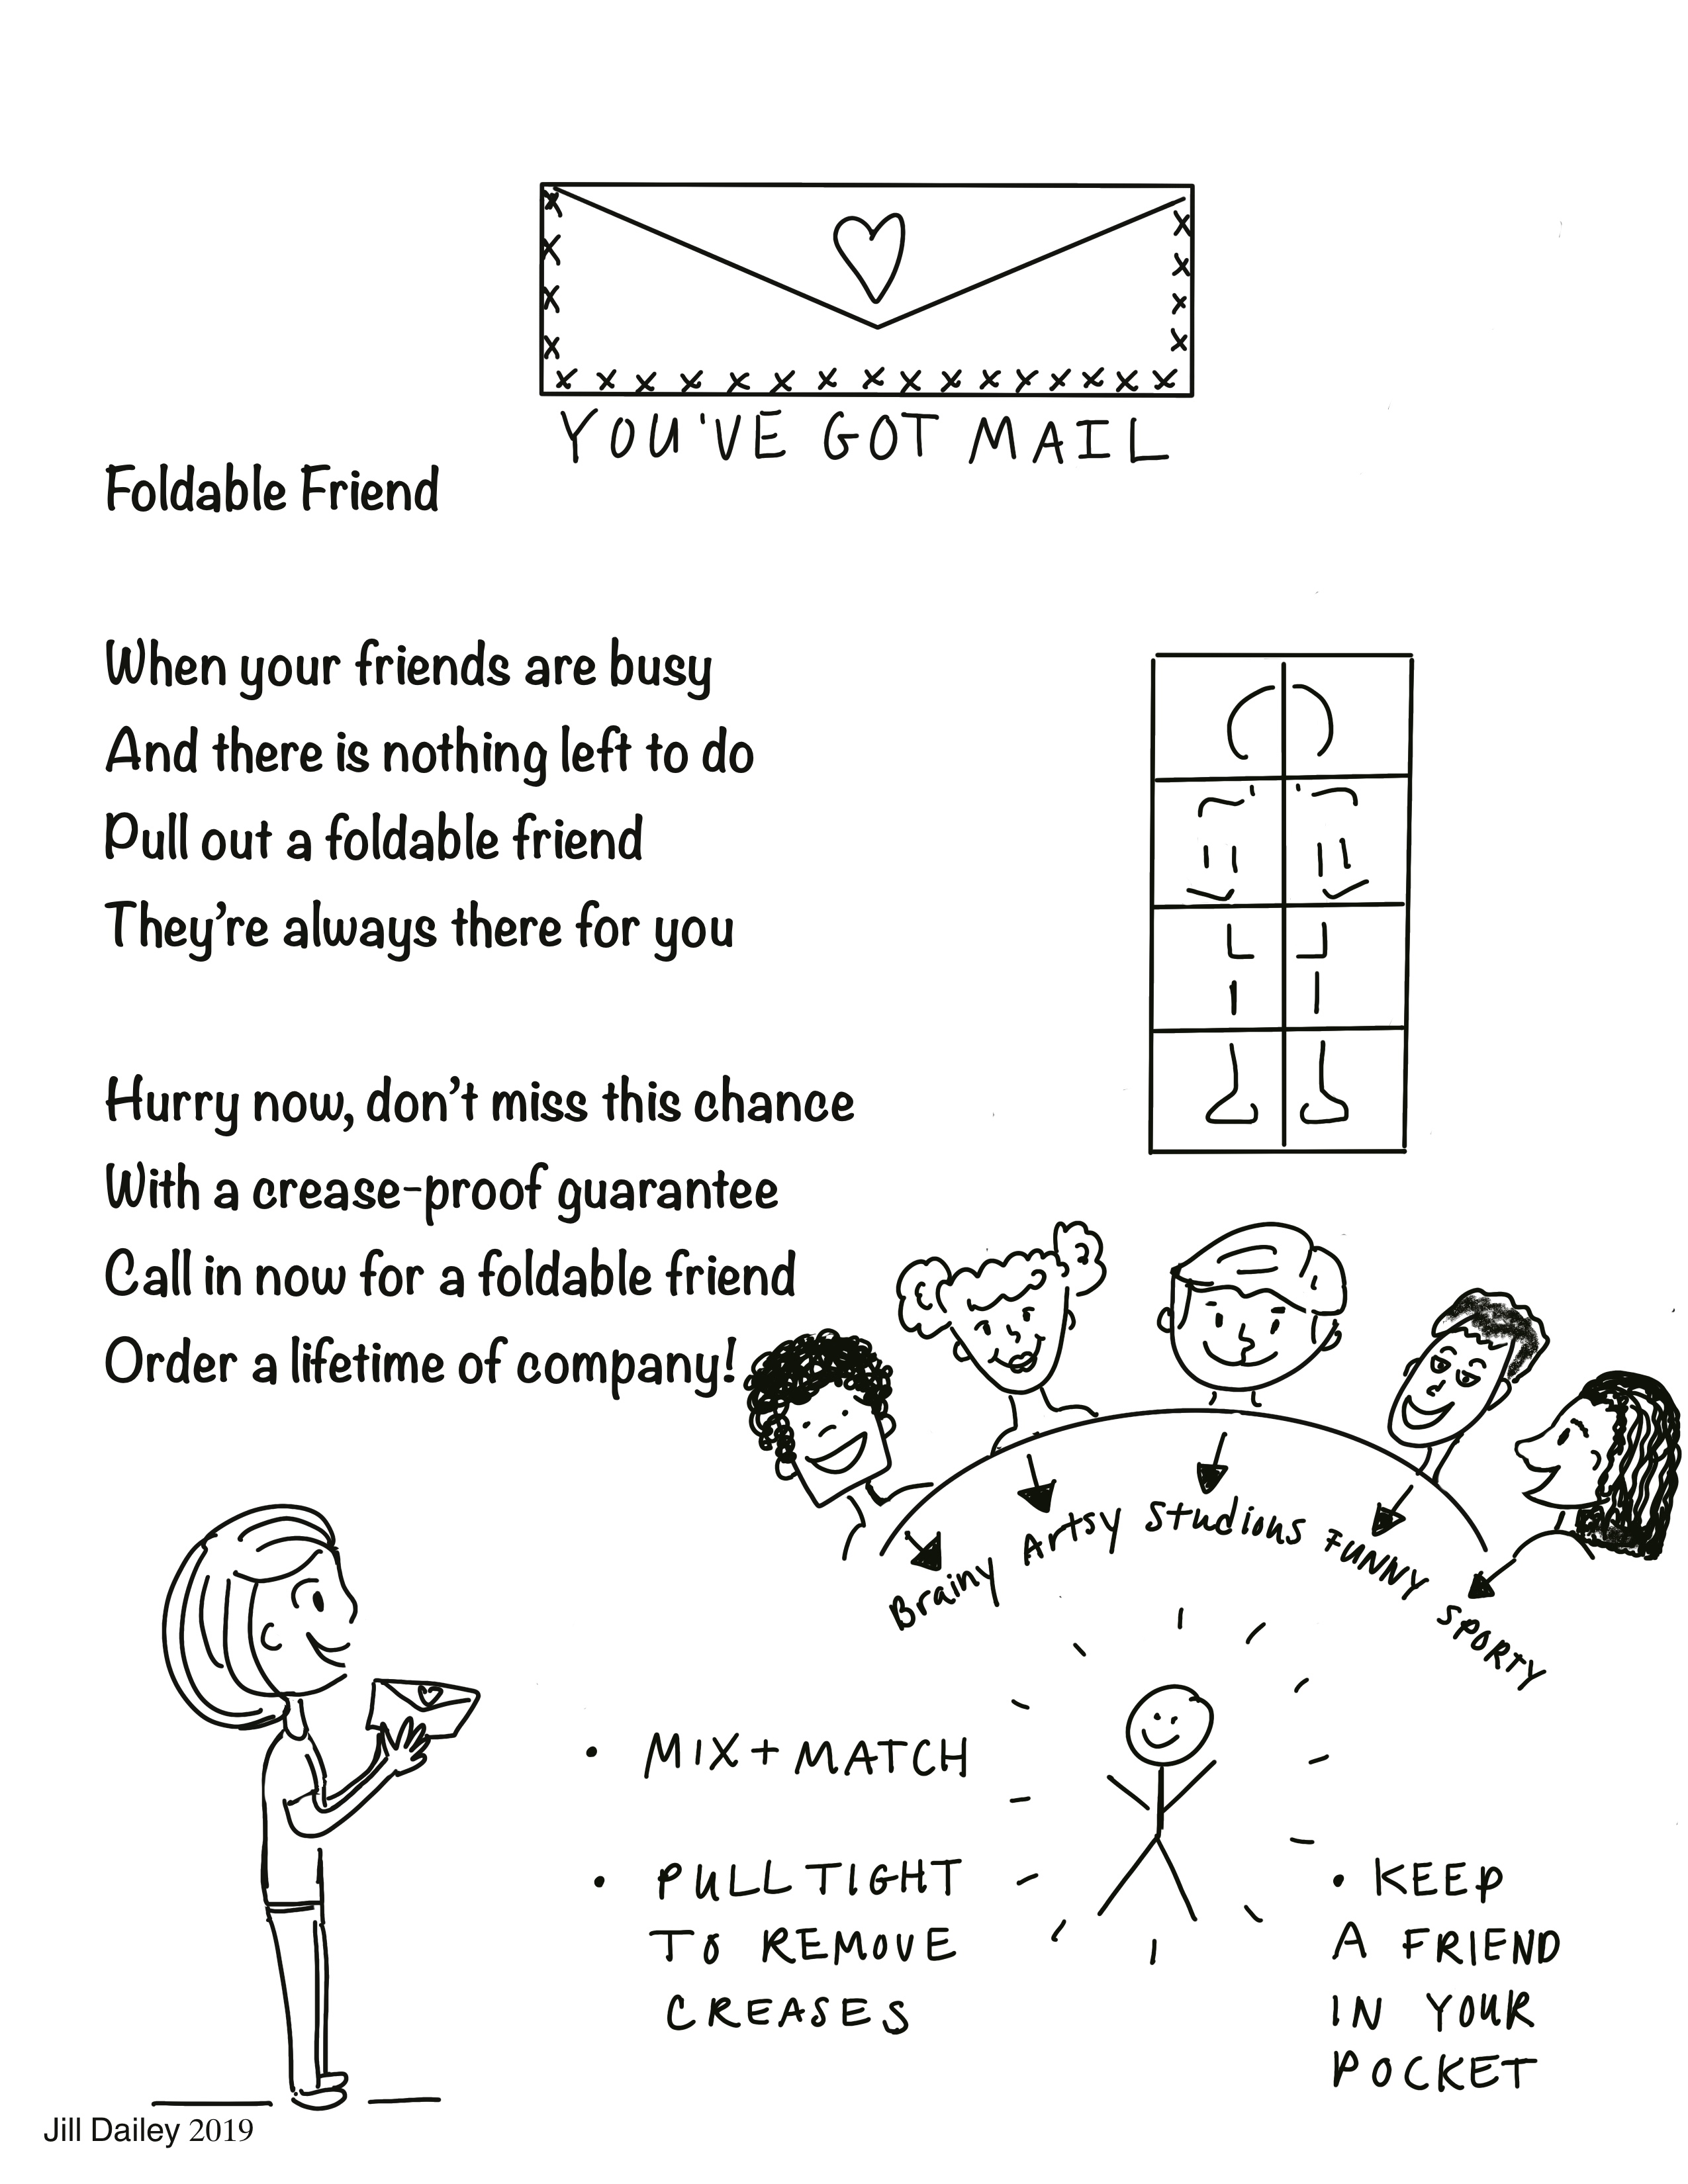 Foldable_Friend